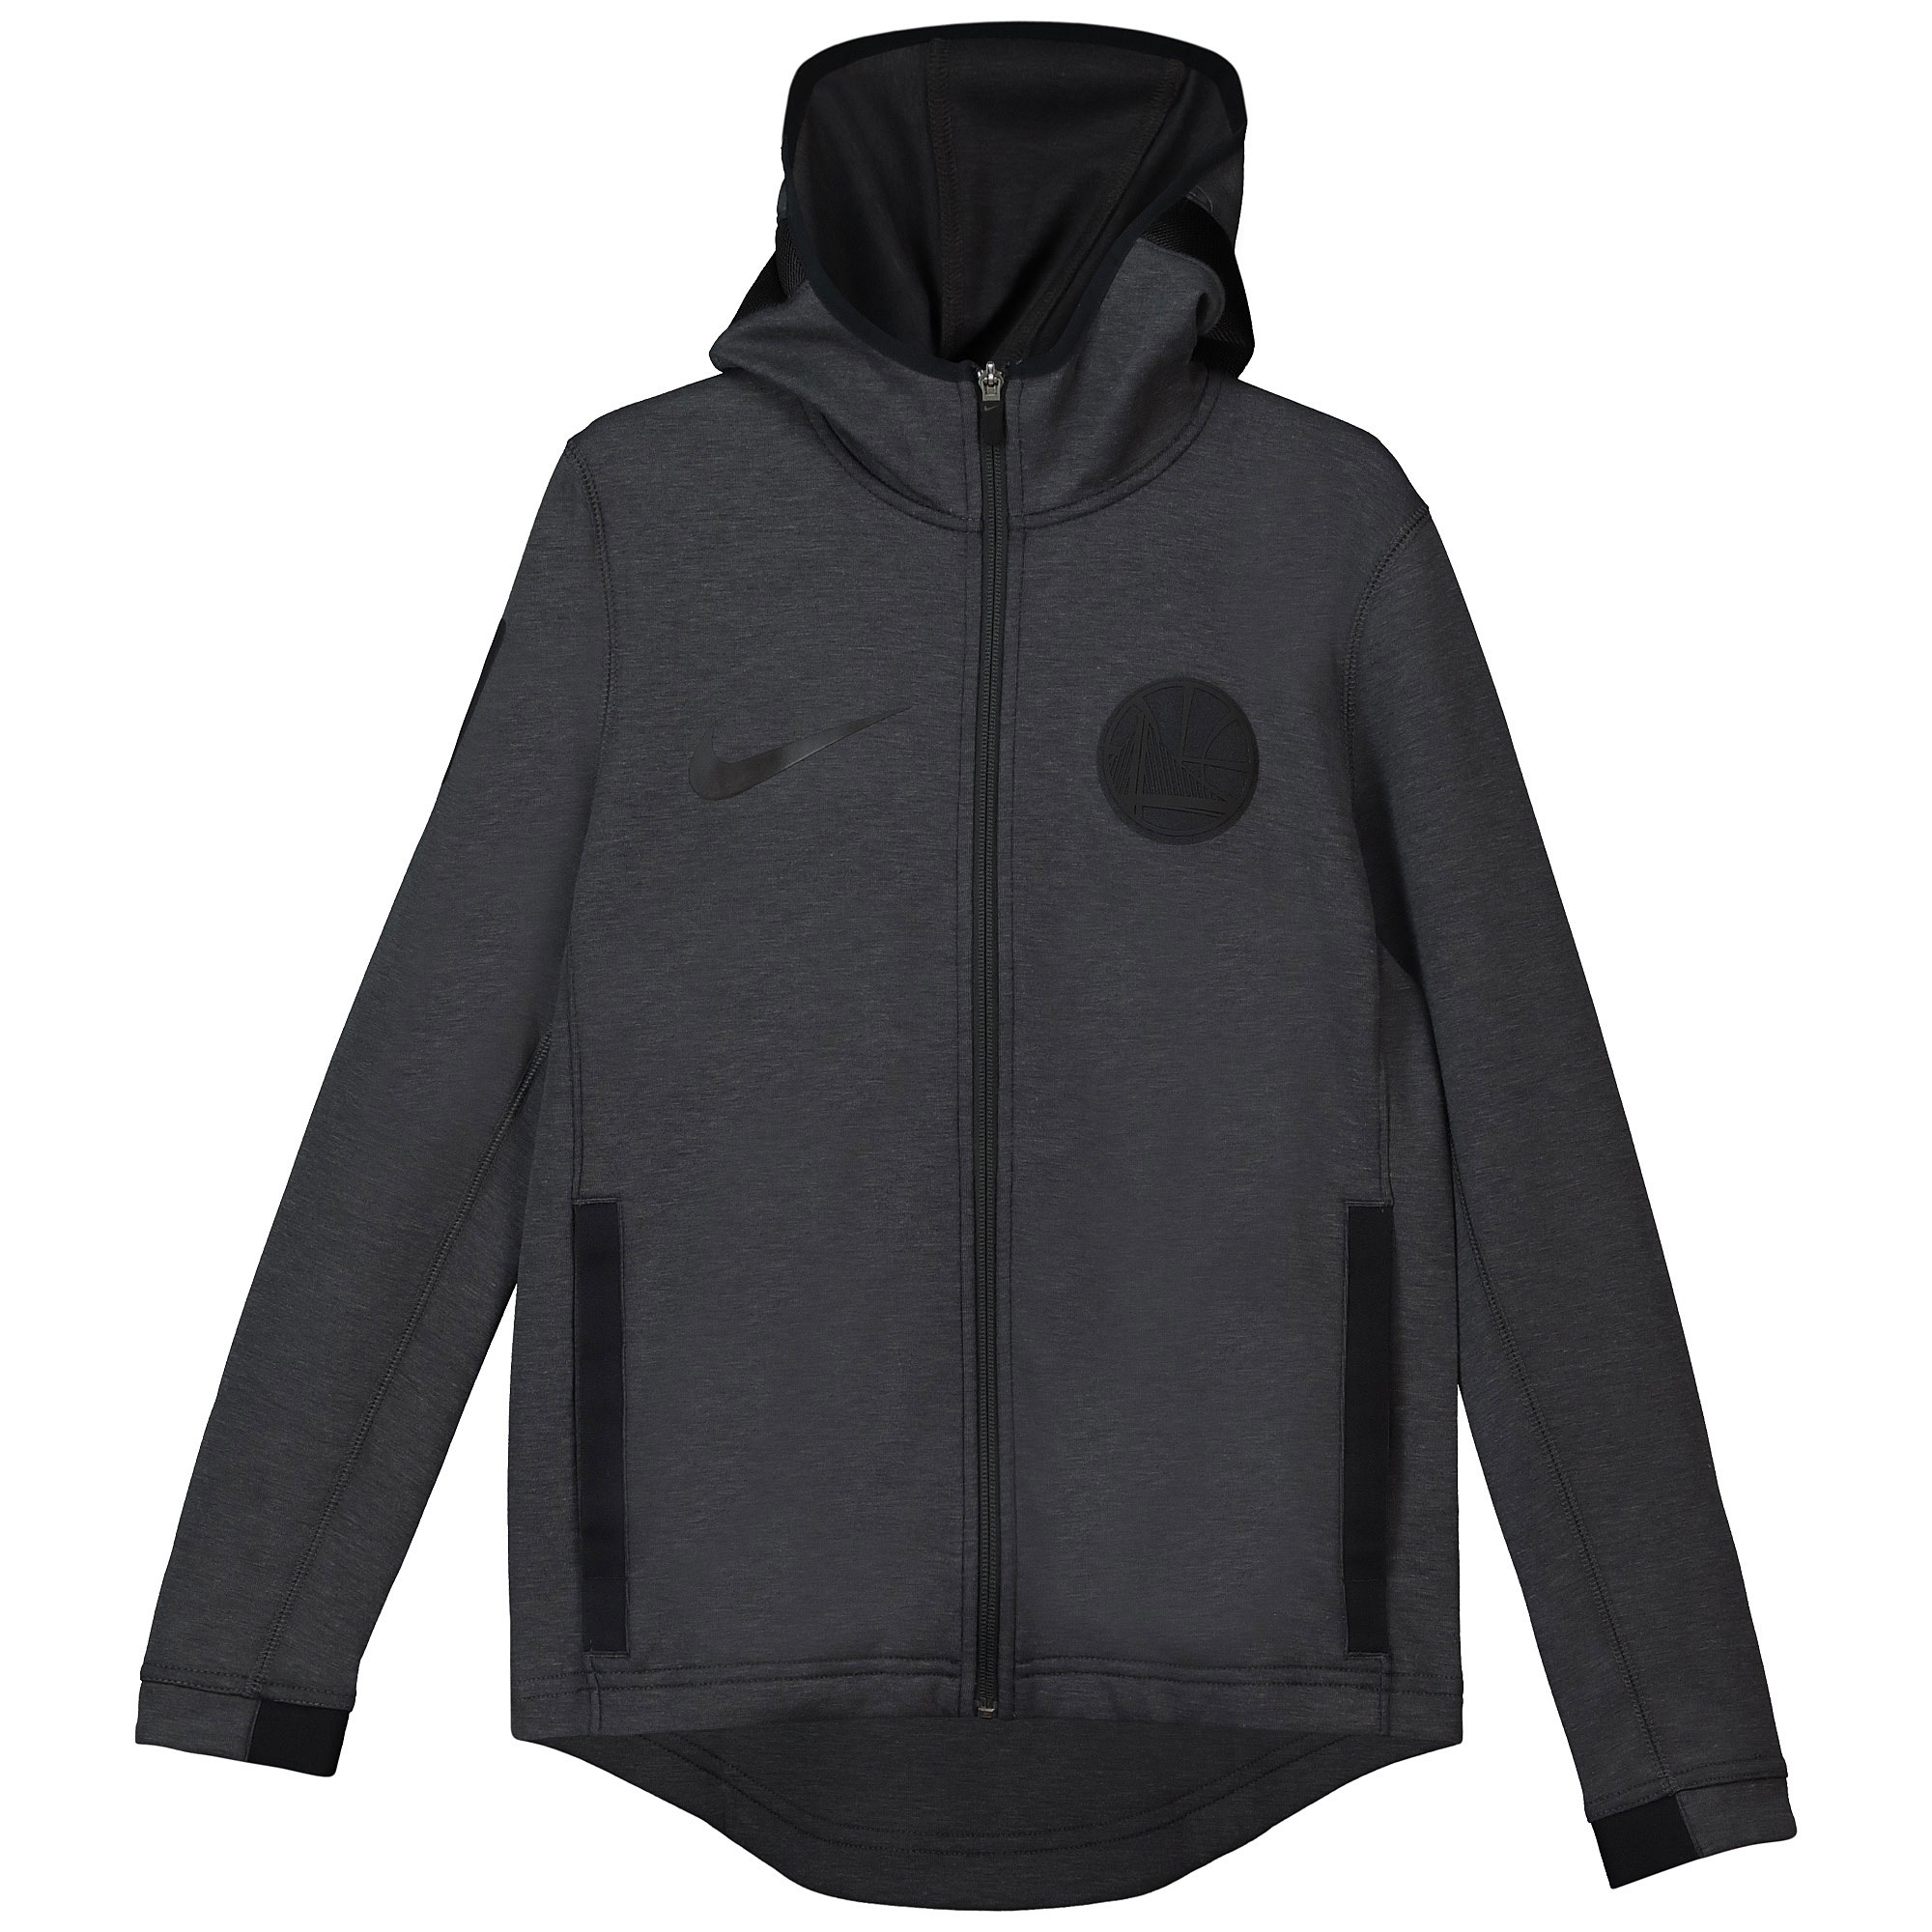 Outerstuff EMEA Ltd / Golden State Warriors Nike Showtime Therma Flex Hoodie - Youth